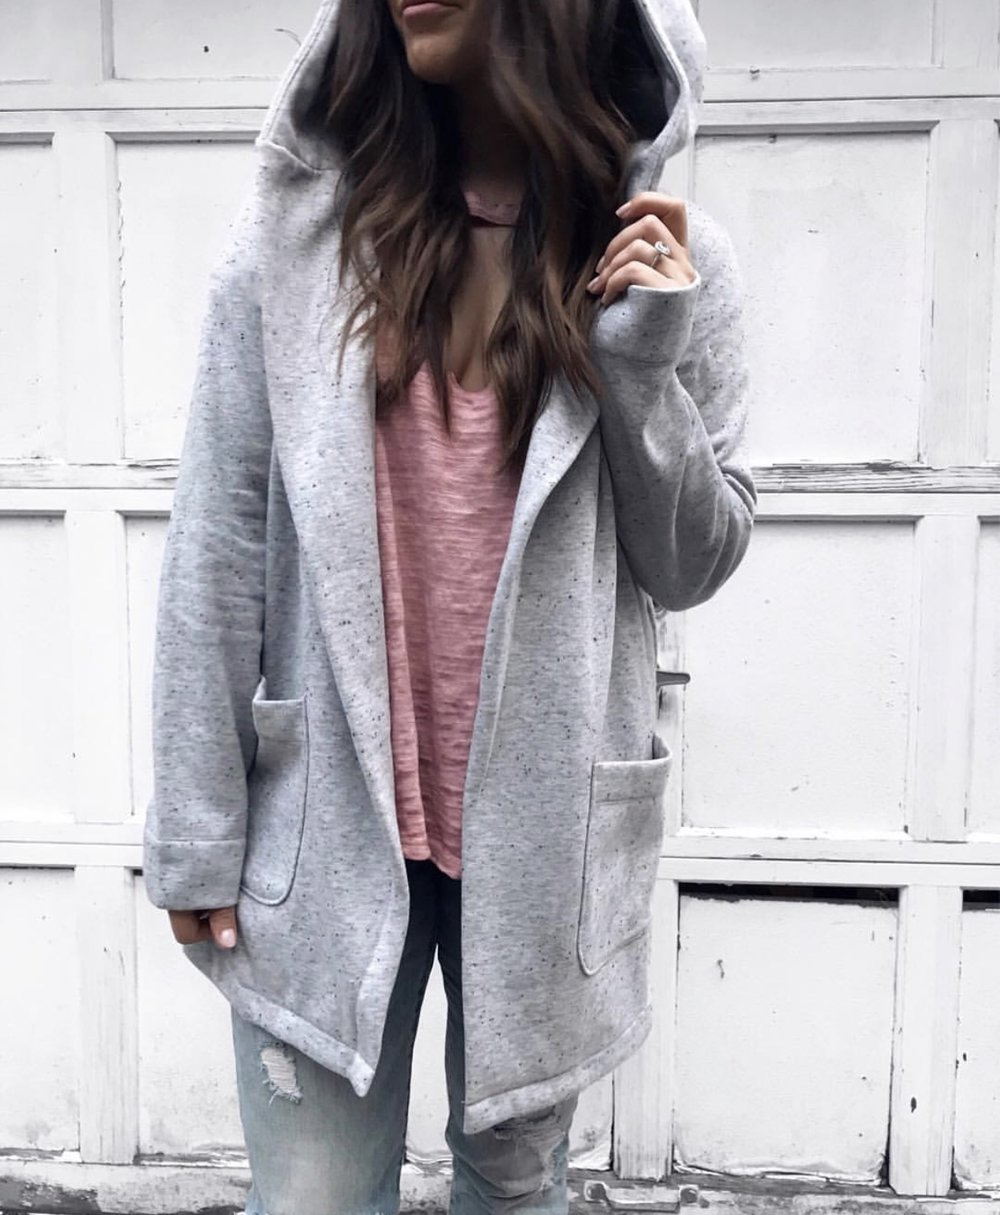 fall fashion, fall outfit idea, fall outfit inspiration, sweater weather, grey cozy cardigan